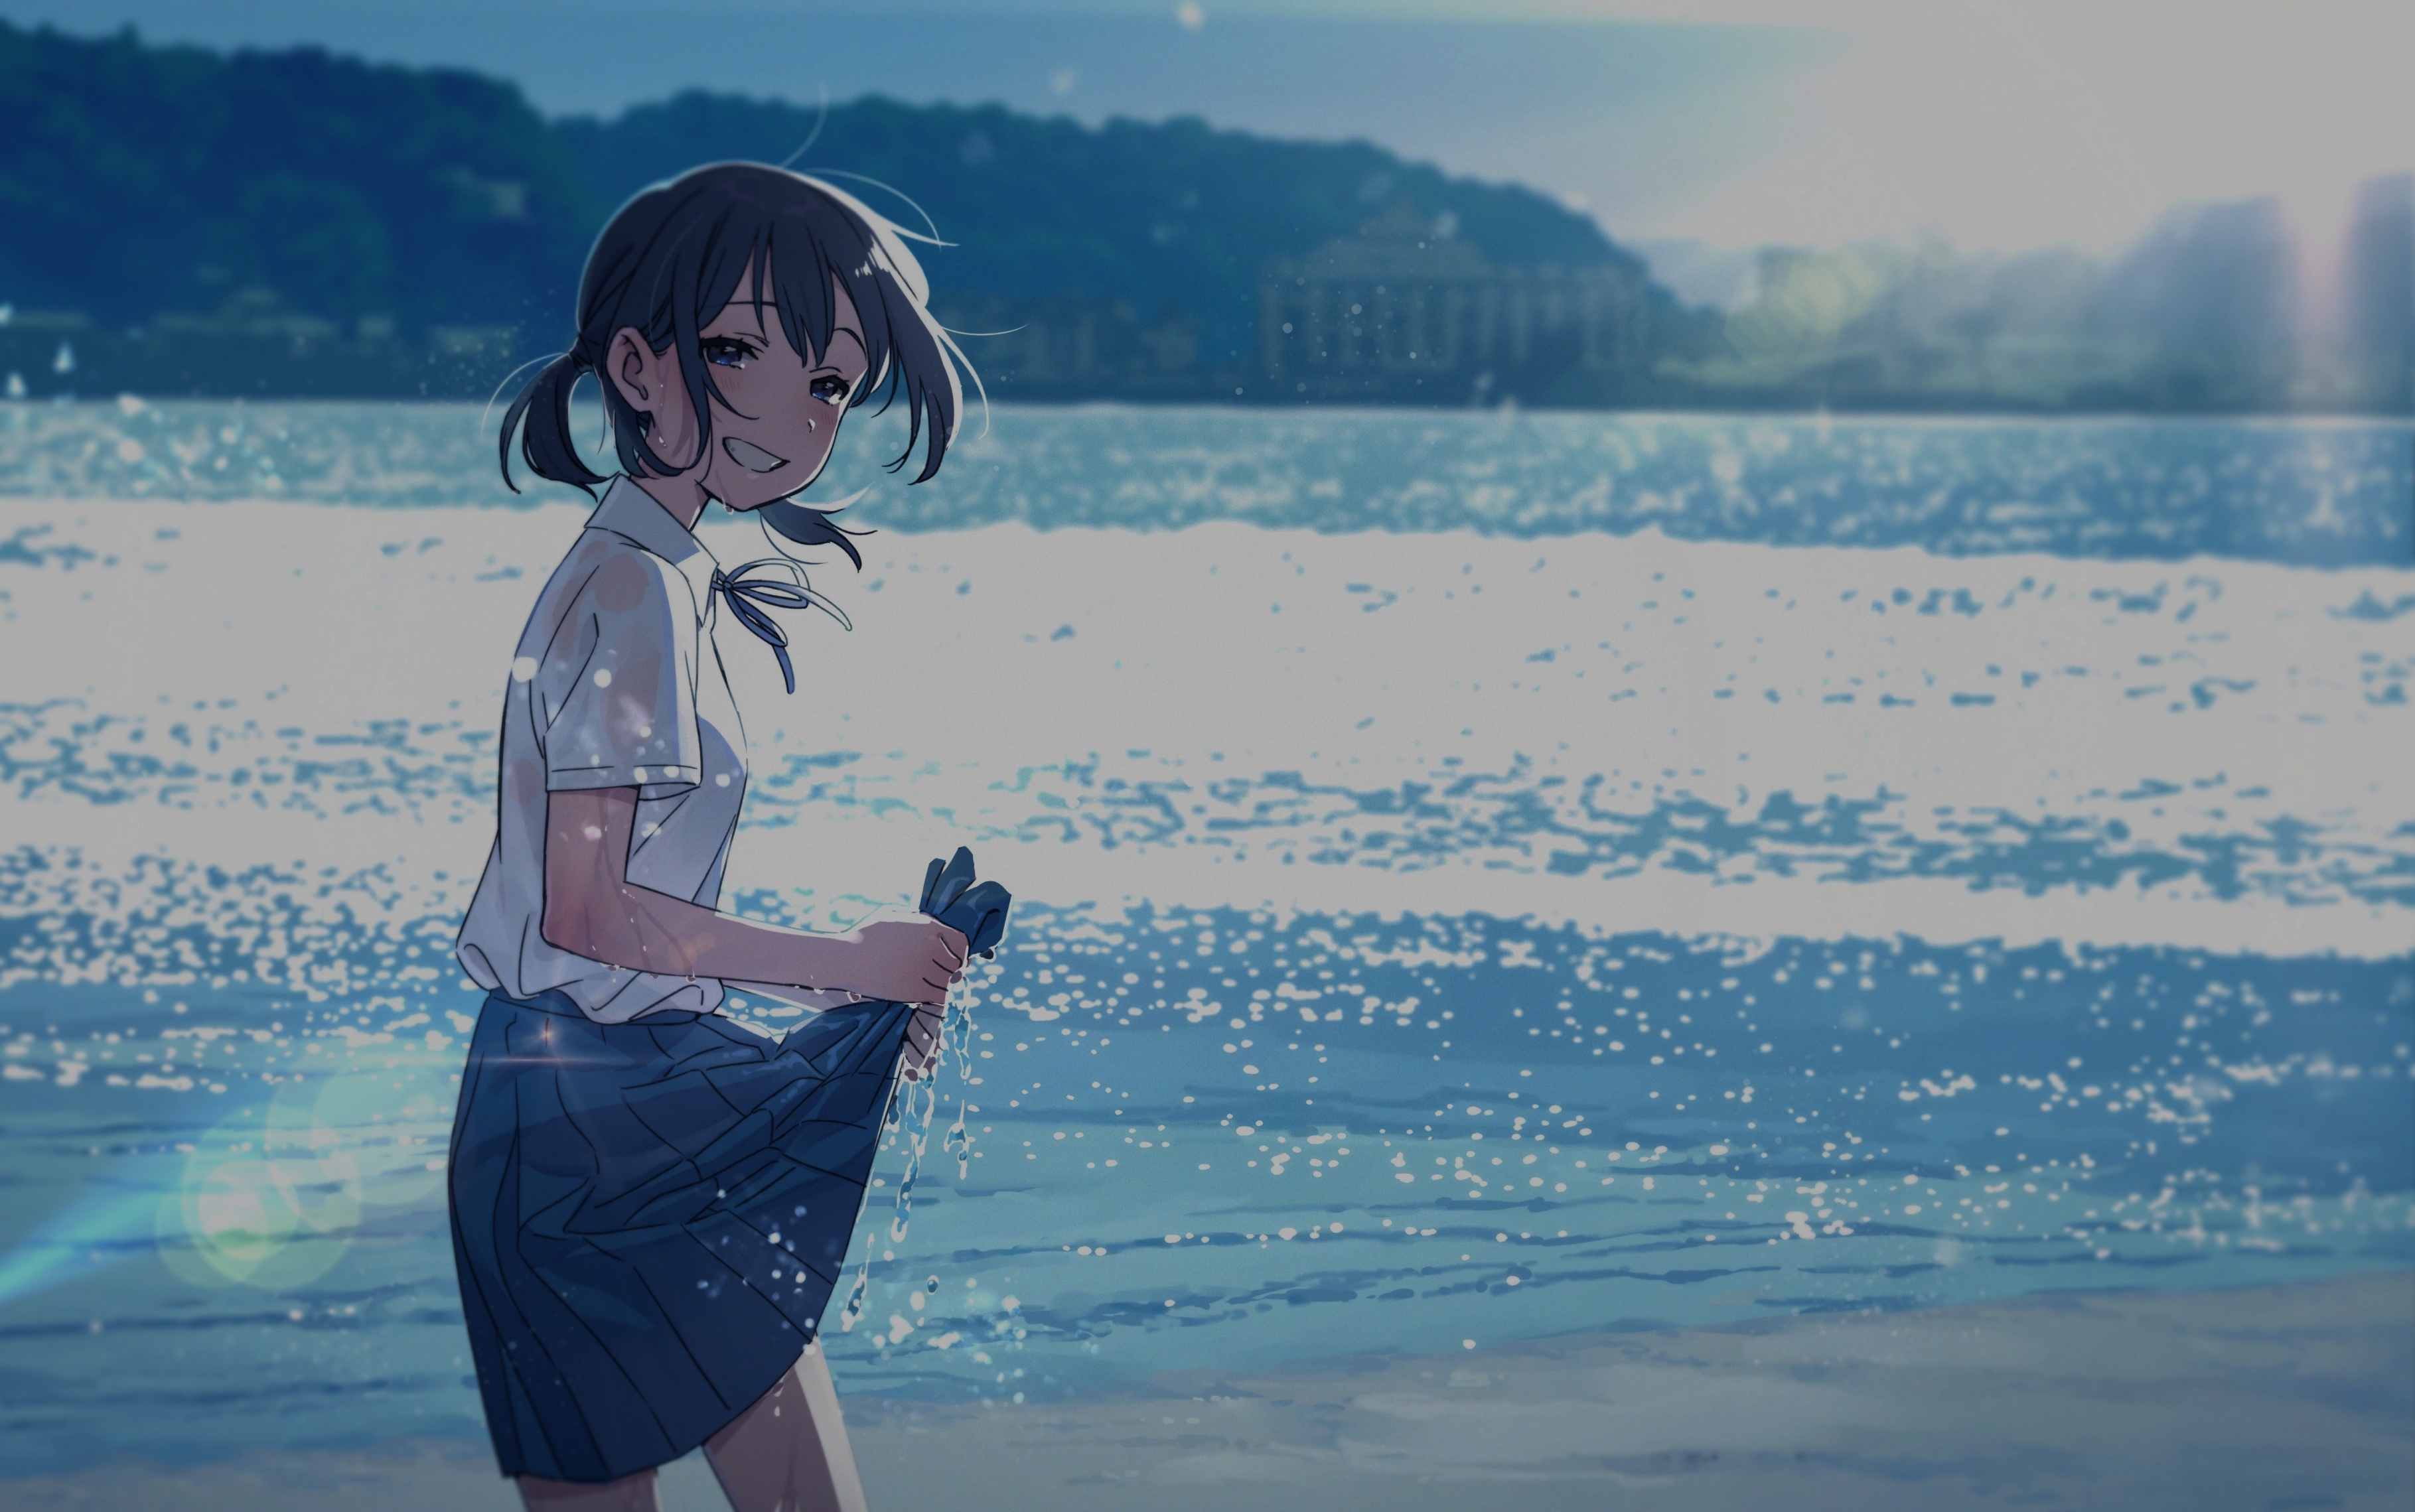 Anime Girl Beach 4k Hd Anime 4k Wallpapers Images Backgrounds Photos And Pictures Explore anime beach wallpapers on wallpapersafari   find more items about anime beach wallpapers, anime backgrounds, anime background. anime girl beach 4k hd anime 4k